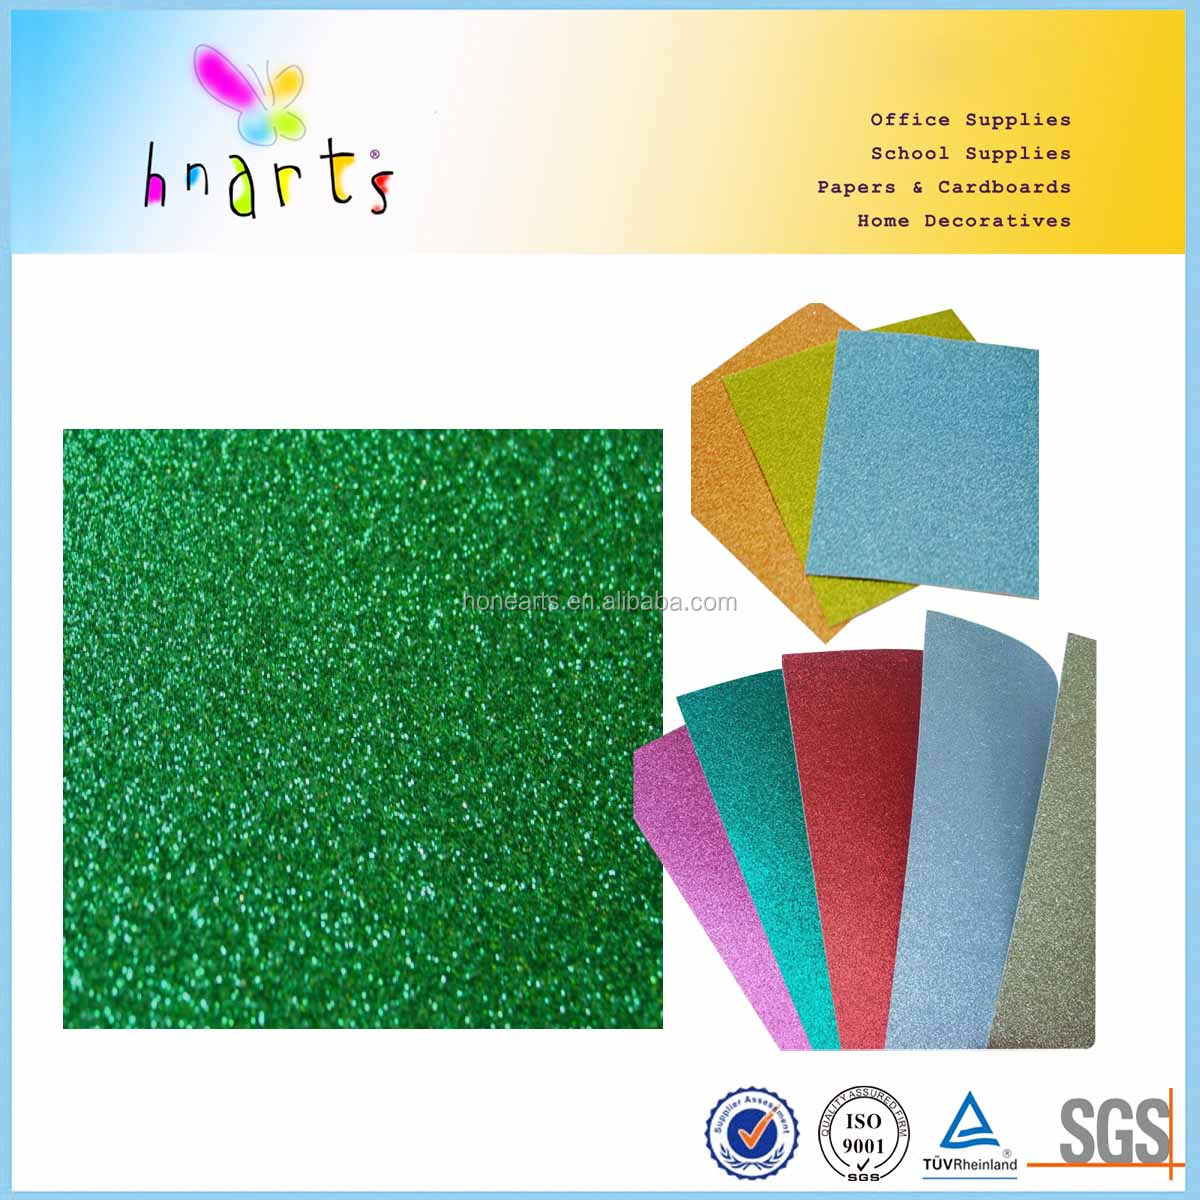 How to scrapbook with glitter - Glitter Paper Wholesale Scrapbook Glitter Paper Buy Glitter Paper Wholesale Glitter Contact Paper Adhesive Glitter Paper Product On Alibaba Com